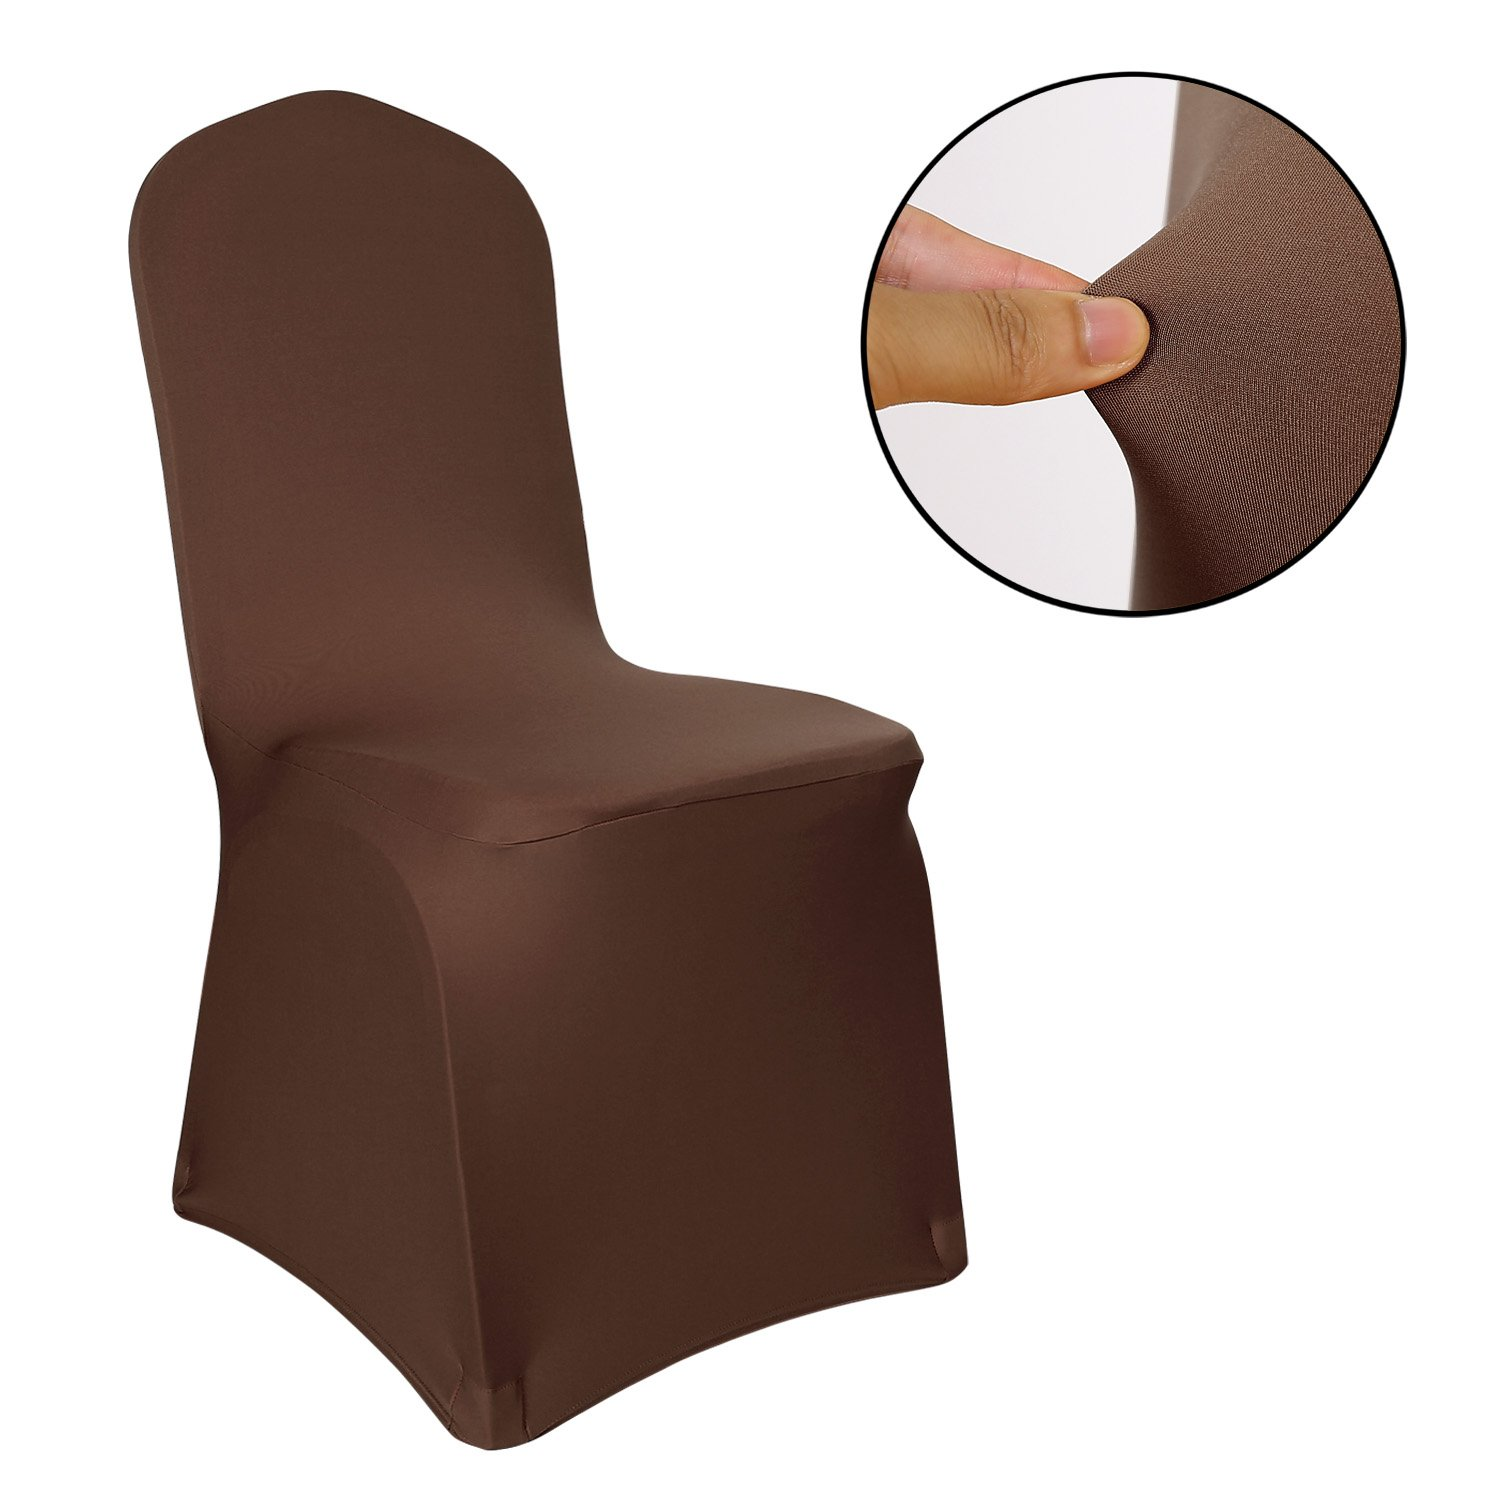 Deconovo Set of 4pcs Brown Color Stretch Chair Covers Spandex Dining Chair Cover for Wedding Banquet Party by Deconovo (Image #2)